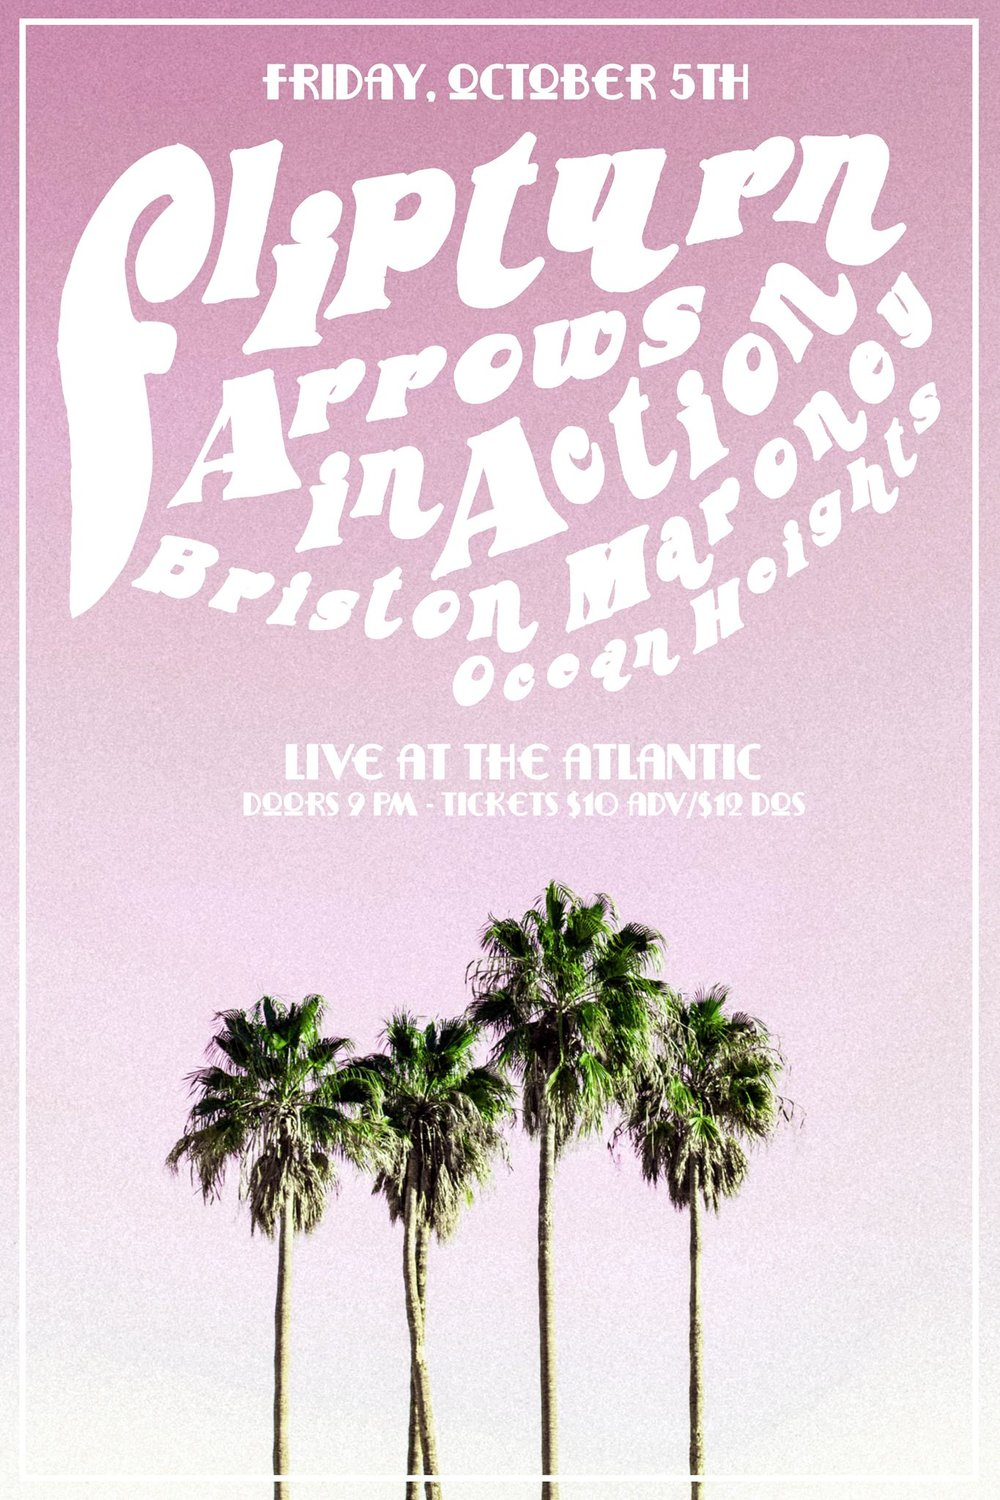 Friday, Oct 5th   flipturn  returns to The Atlantic  with guests:  Arrows In Action   Briston Maroney Music  (TN)   Ocean Heights  (NJ)   Doors open at 9pm, show starts at 9:30pm   $10adv/$12dos  Make sure and buy your tickets in advance!   Buy Tickets